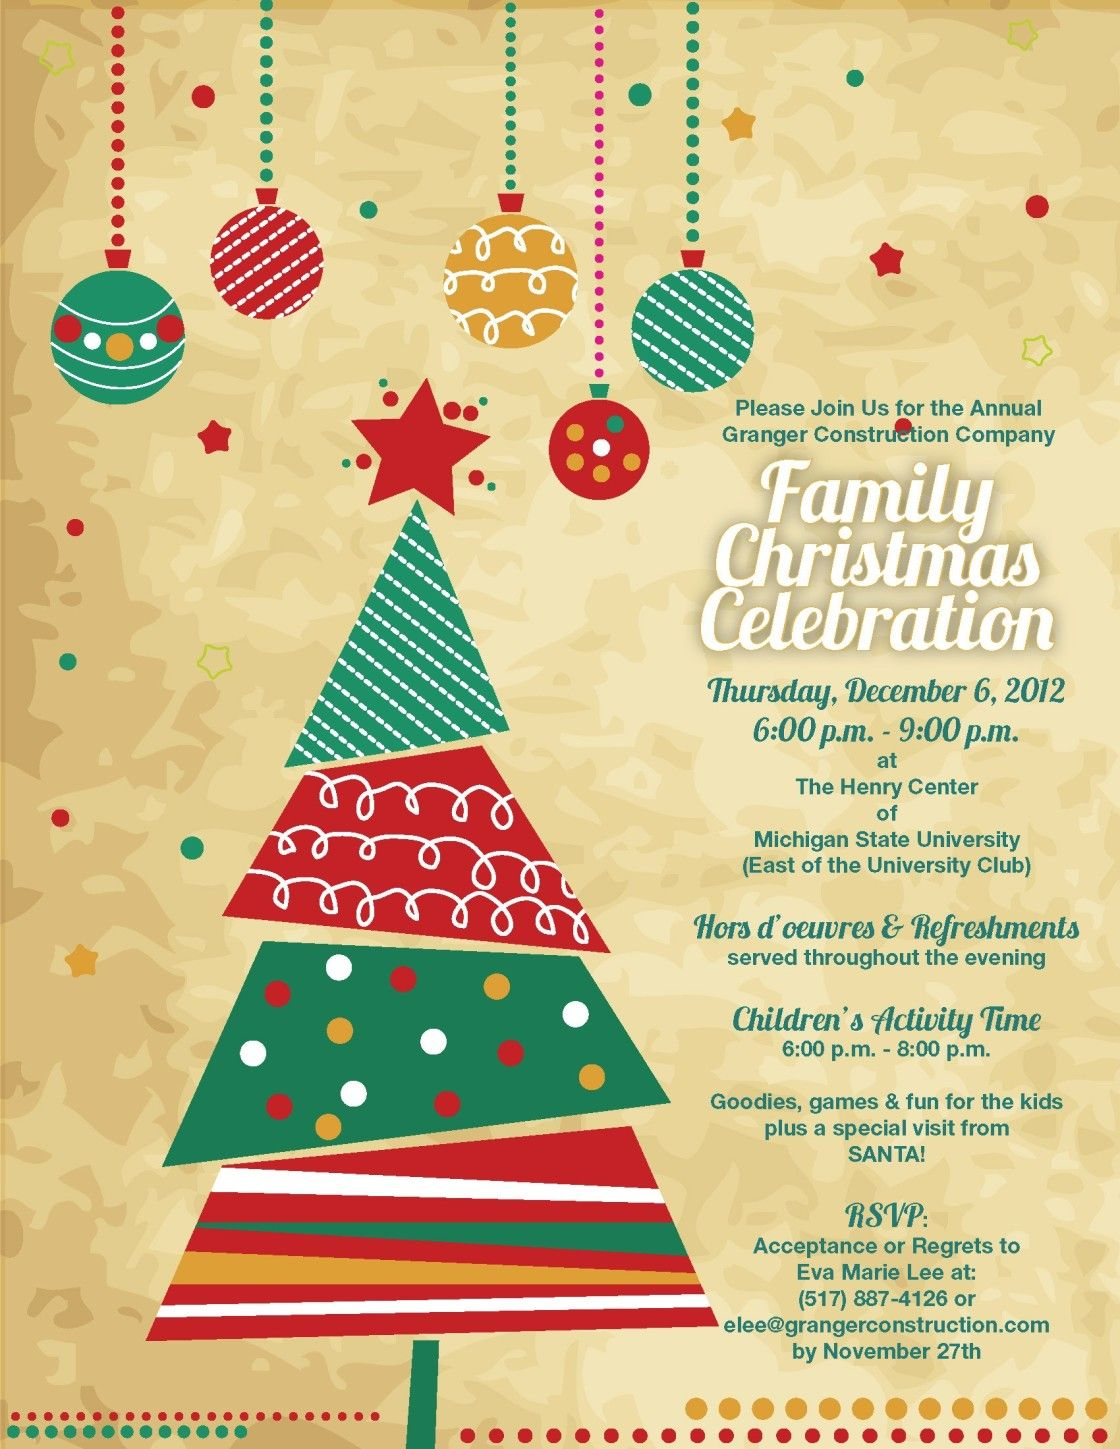 Handmade Christmas Party Invitations Yahoo Image Search Results - Party invitation template: office christmas party invite template